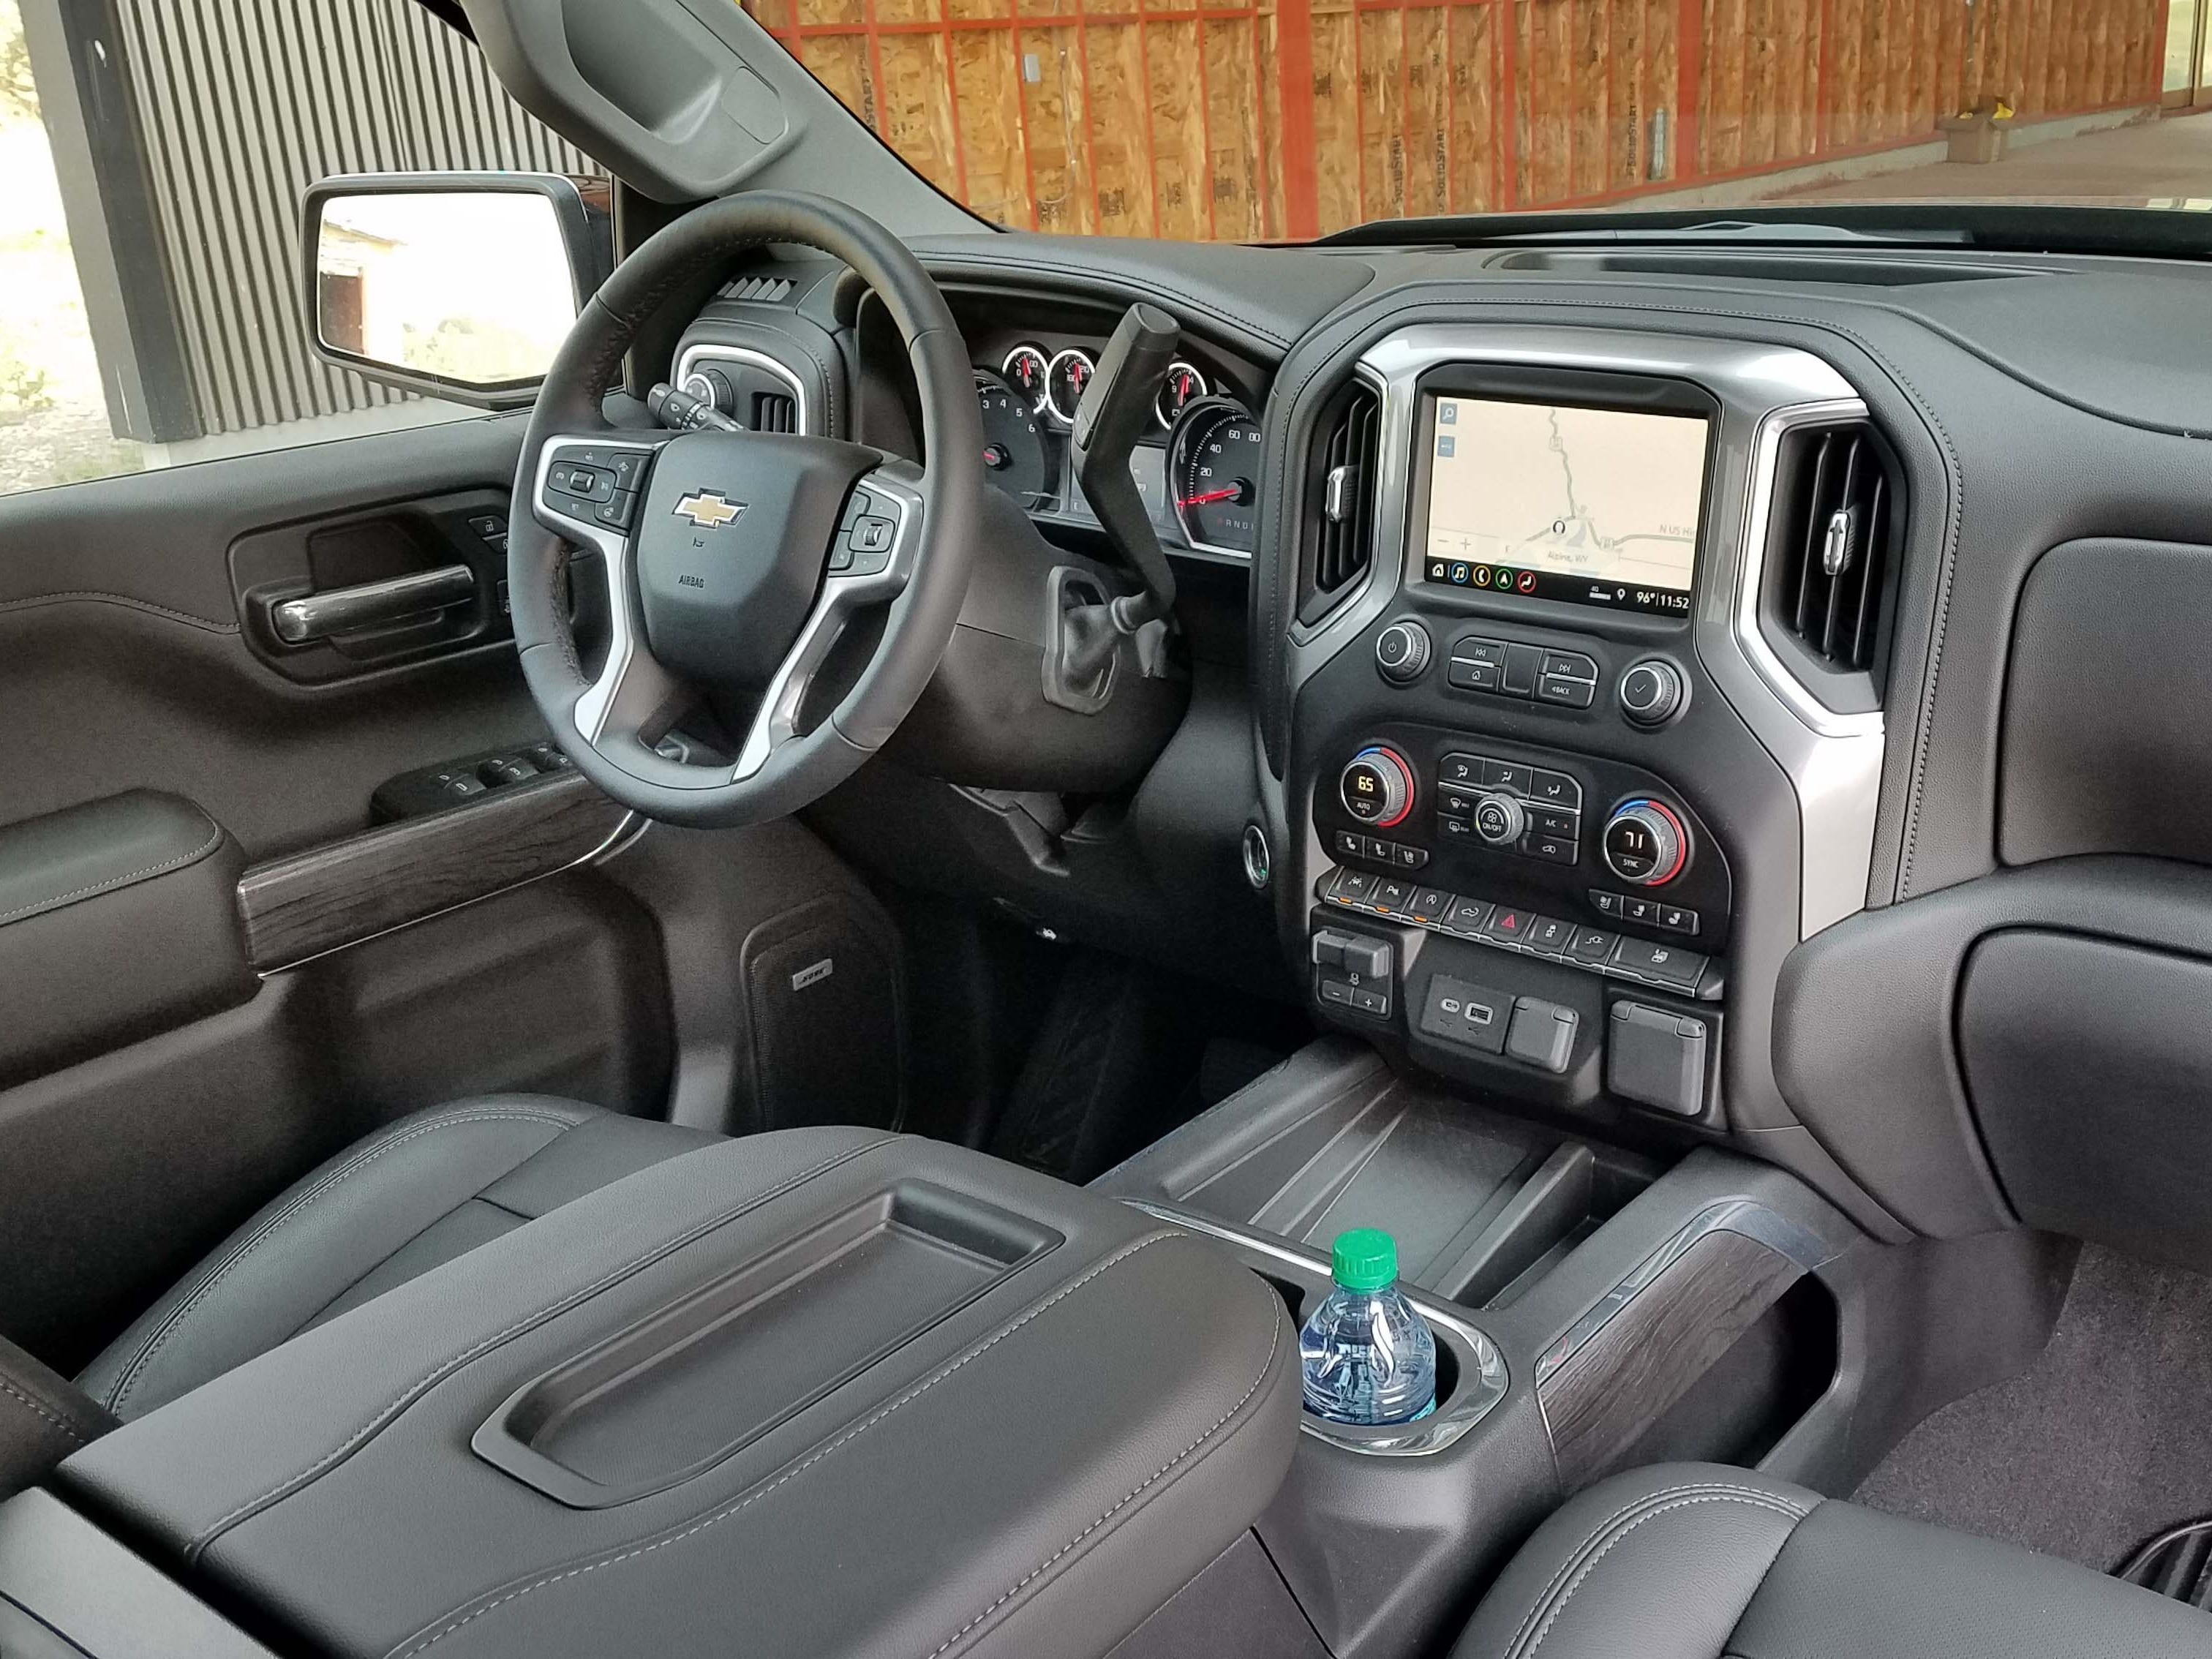 The 2019 Chevy Silverado interior with all the trimmings — leather seats and console stitching, full center console, 8-inch screen, satellite radio and much more. Missing are options found in more affordable vehicles like adaptive cruise control.